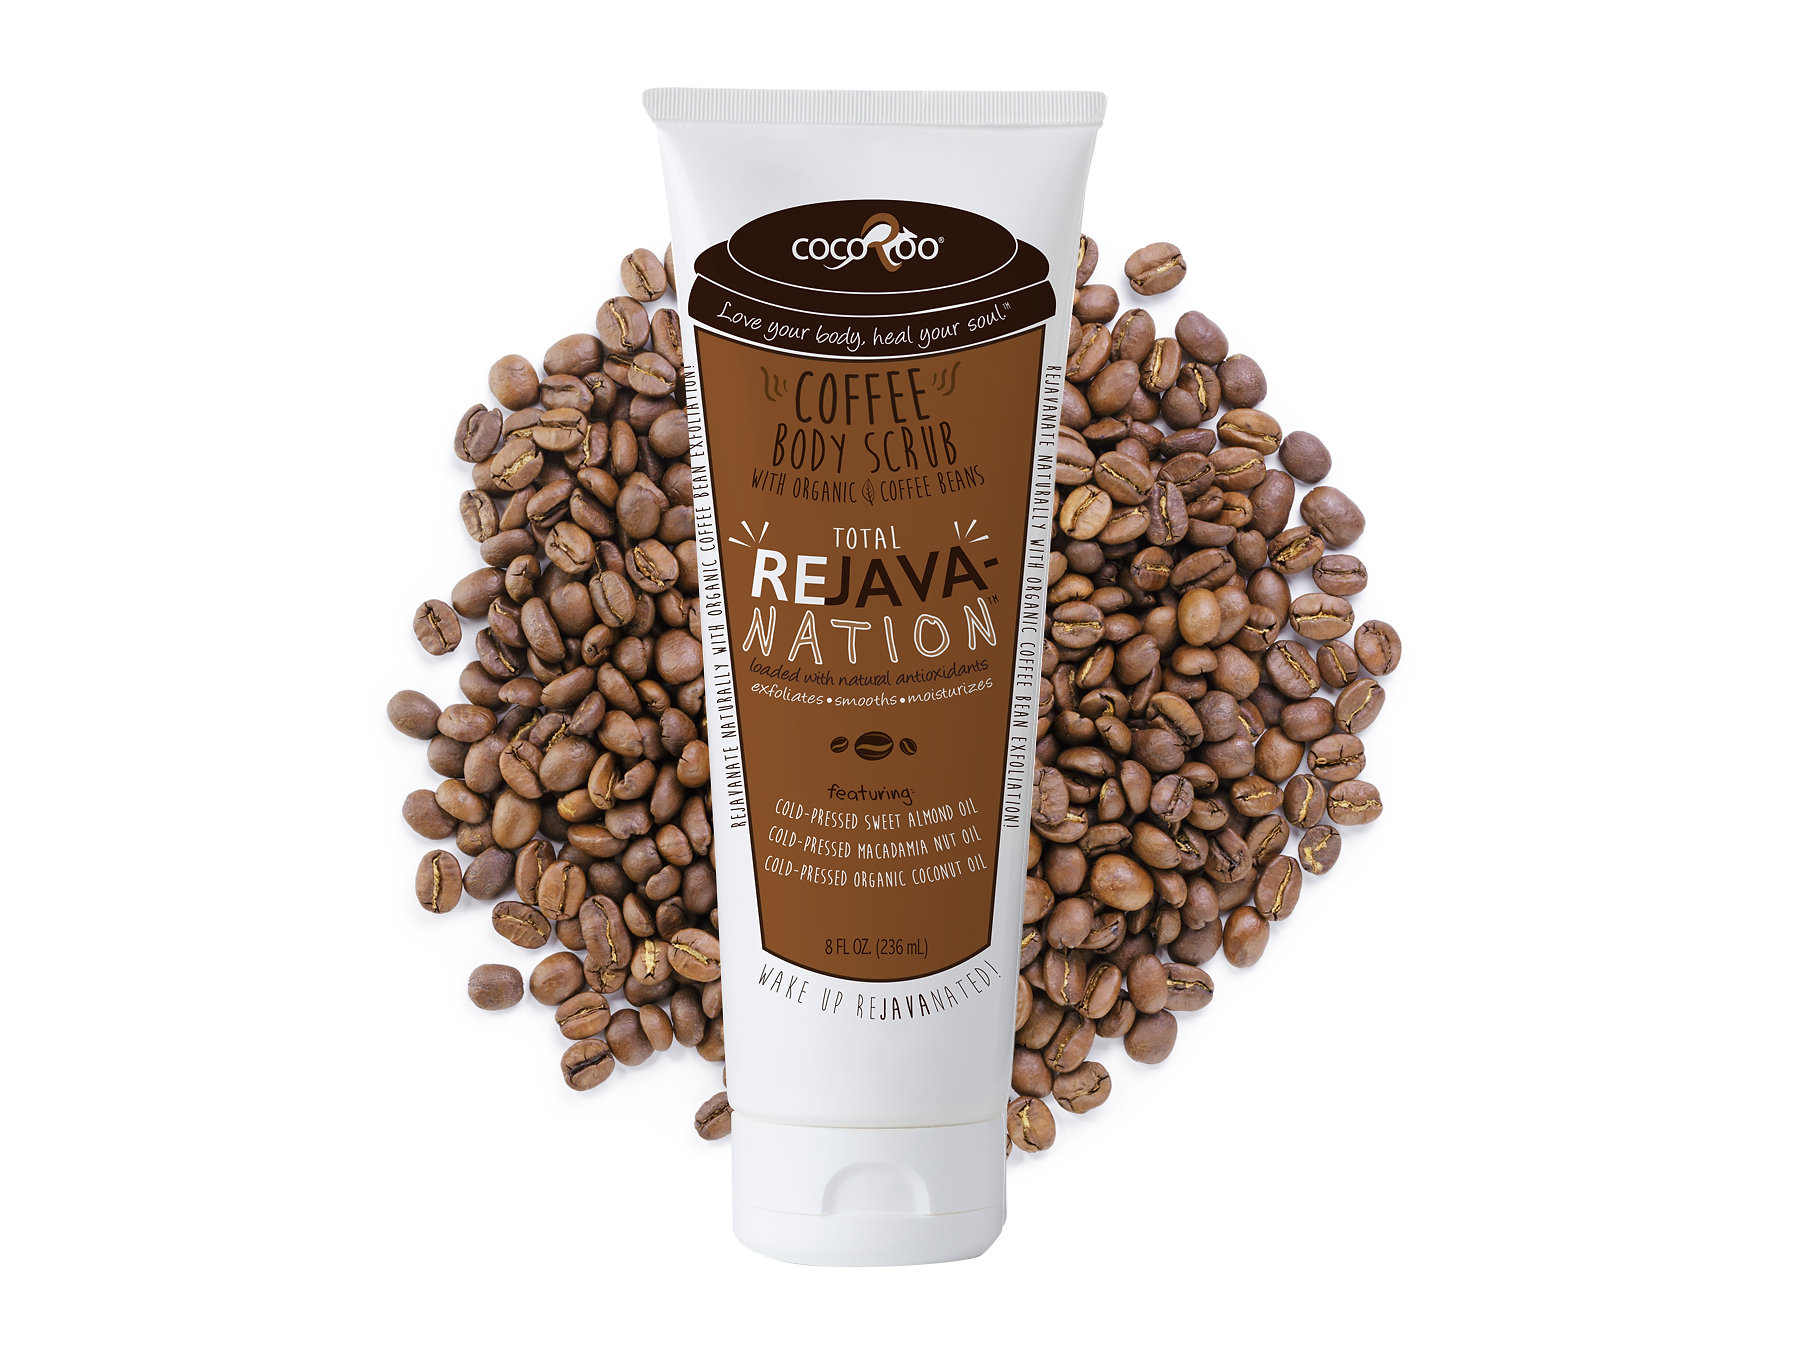 CocoRoo's ReJavanation body scrub is made with Organic Arabica Coffee Beans along with cold- pressed sweet almond oil, cold- pressed coconut oil, and cold- pressed macadamia nut oil. The fresh organic coffee will leave you feeling completely refreshed without clogging your drain. It exfoliates, smooths, and moisturizes, with a wonderful coffee aroma you will crave that will leave you wide awake as if you just bathed in your morning cup of coffee! Retails for $19.95.